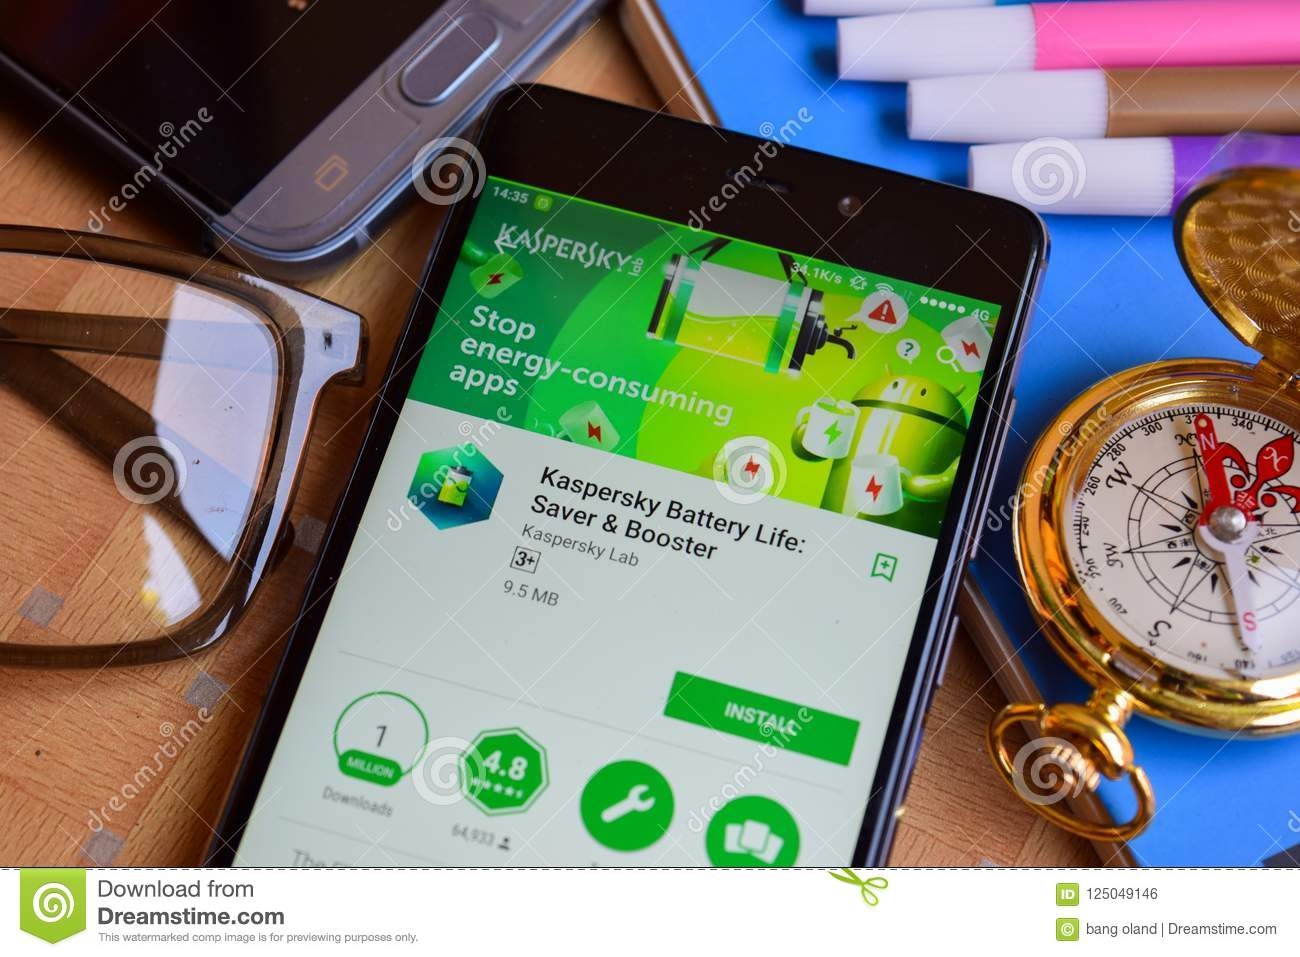 Kaspersky Battery Life: Saver & Booster Dev App On